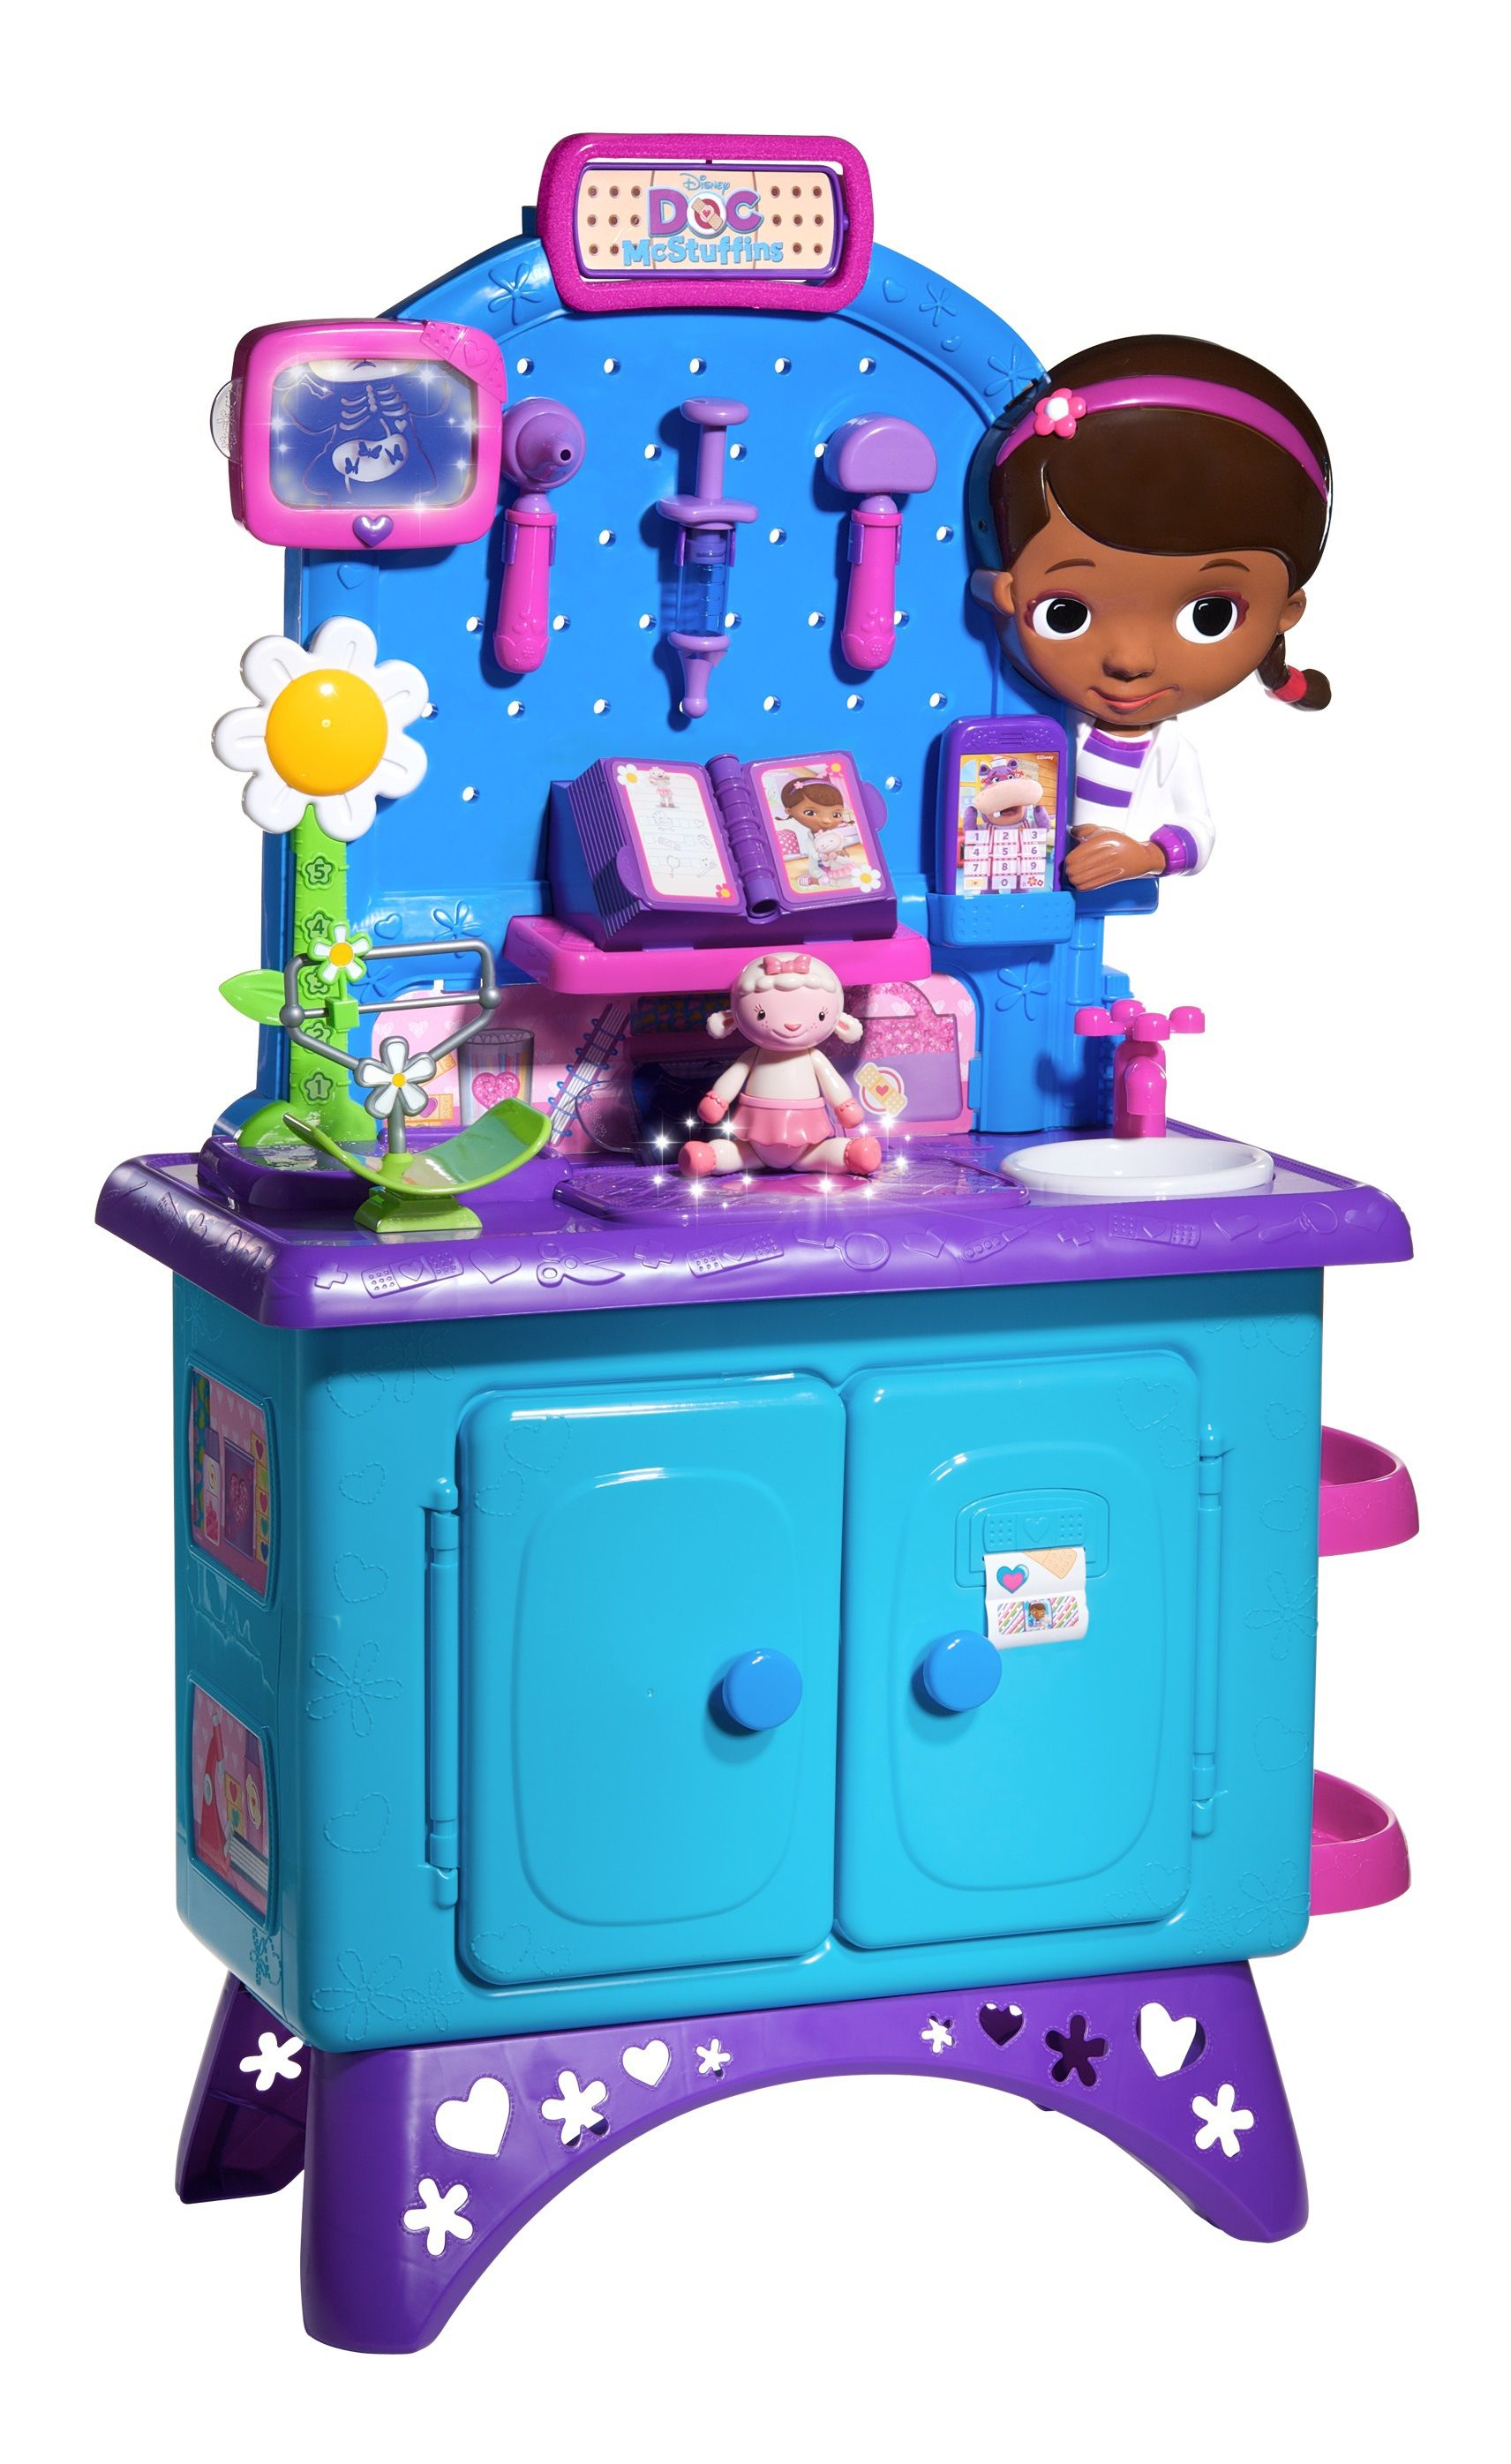 Kids Gear And Products Doc Mcstuffins Toys Doc Mcstuffins Holiday Toys